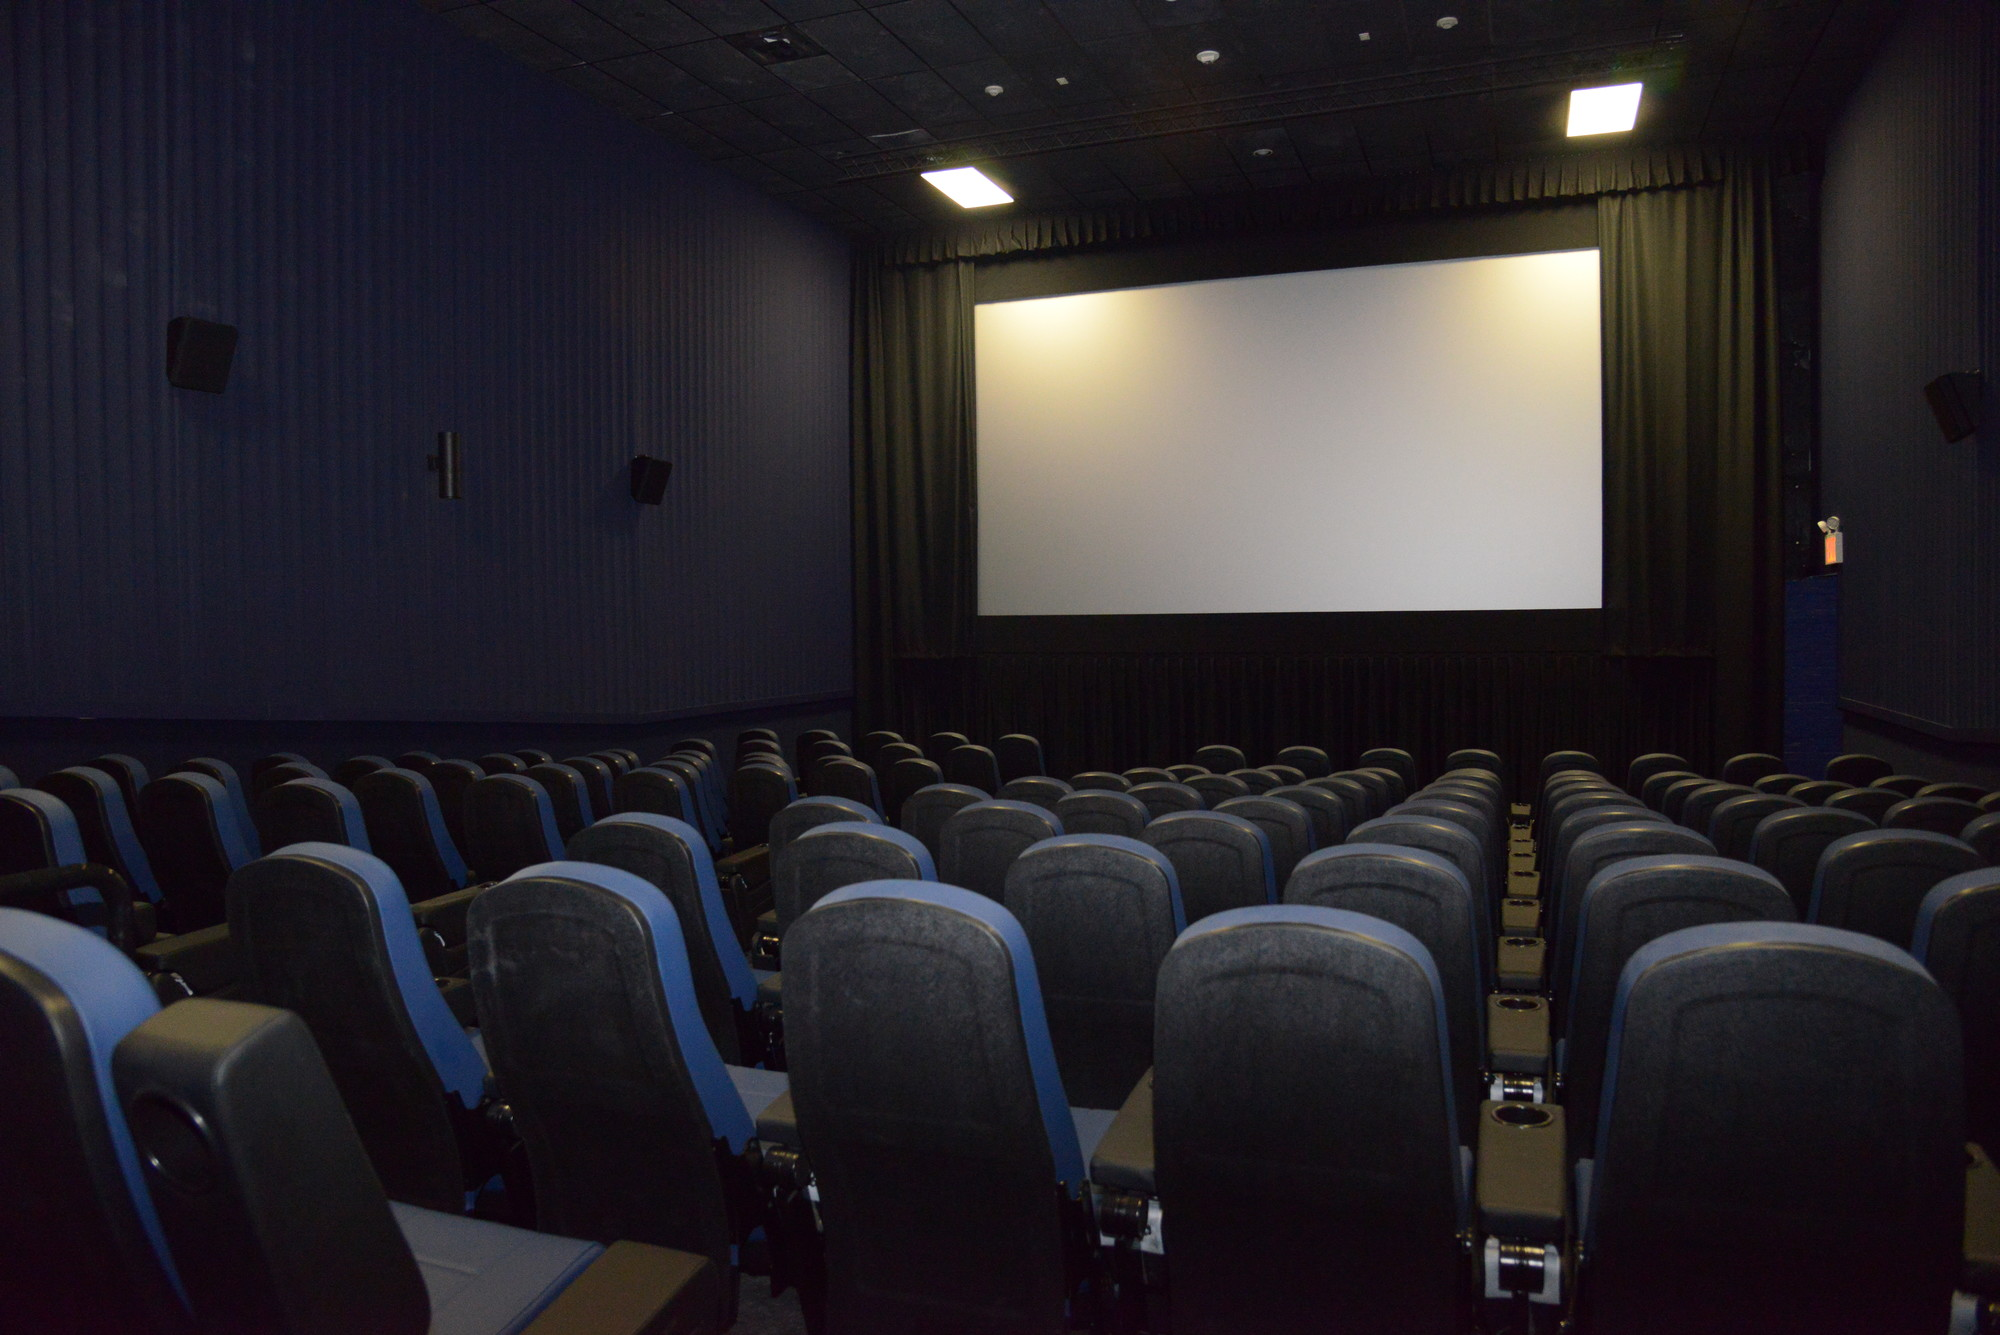 Long Beach Cinemas is expected to reopen on Friday, and the renovations include new movie screens and leather seats. The theater will also offer reserved seating and ticket kiosks.